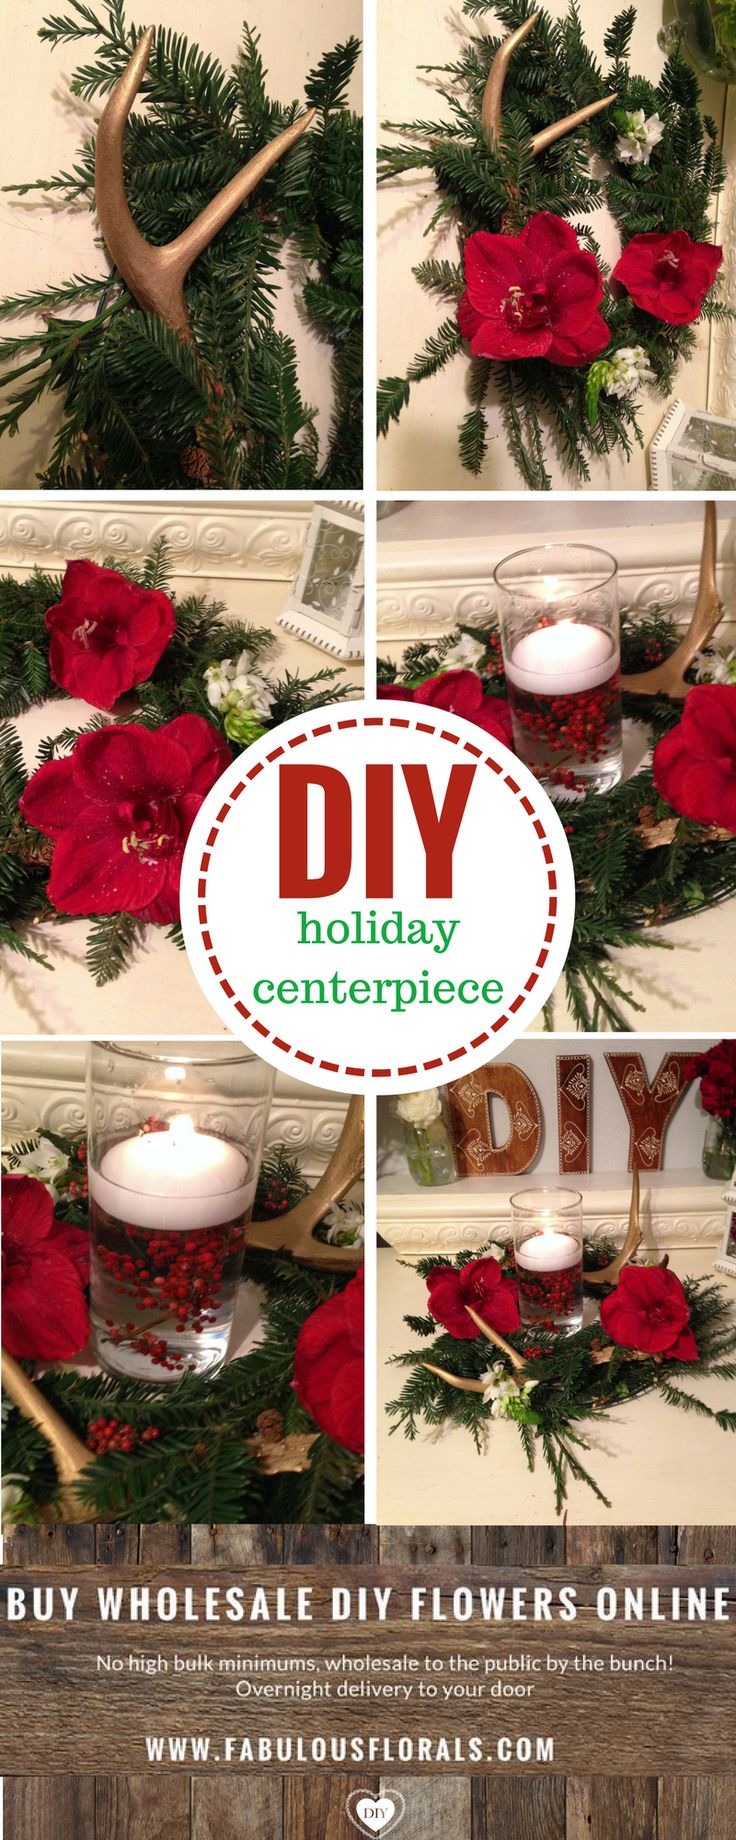 DIY Holiday antler Centerpiece 2017 Christmas flower trends! www.fabulousflorals.com The #1 source for wholesale flowers! #holidayflowers #diyflowers #diychristmas #antlers  #christmas